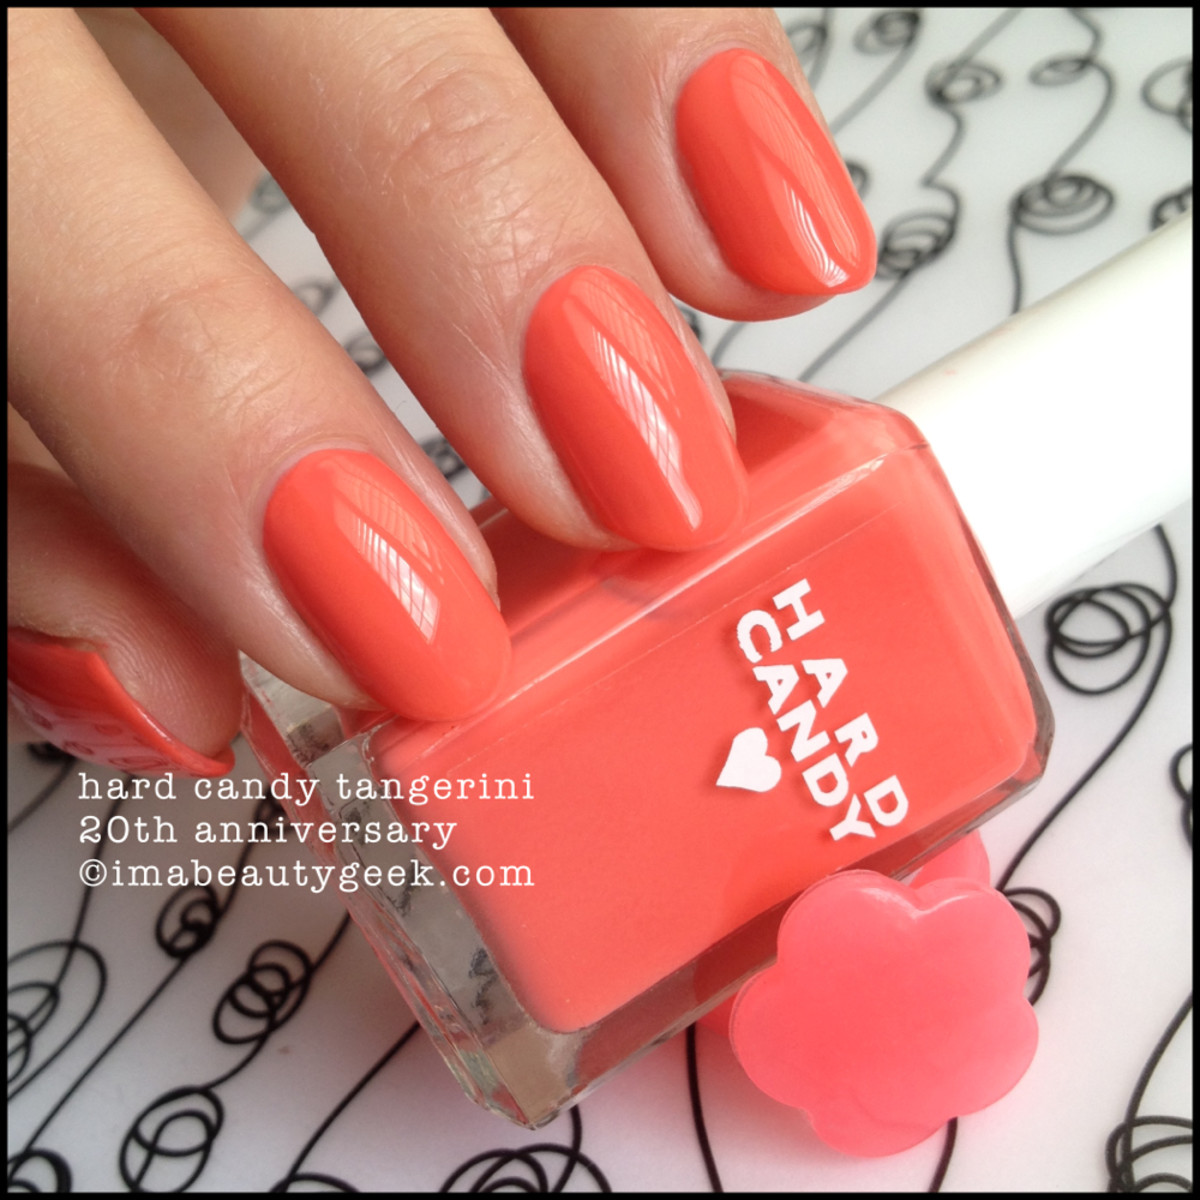 Hard Candy Tangerini 20th Anniversary Nail Polish 2015